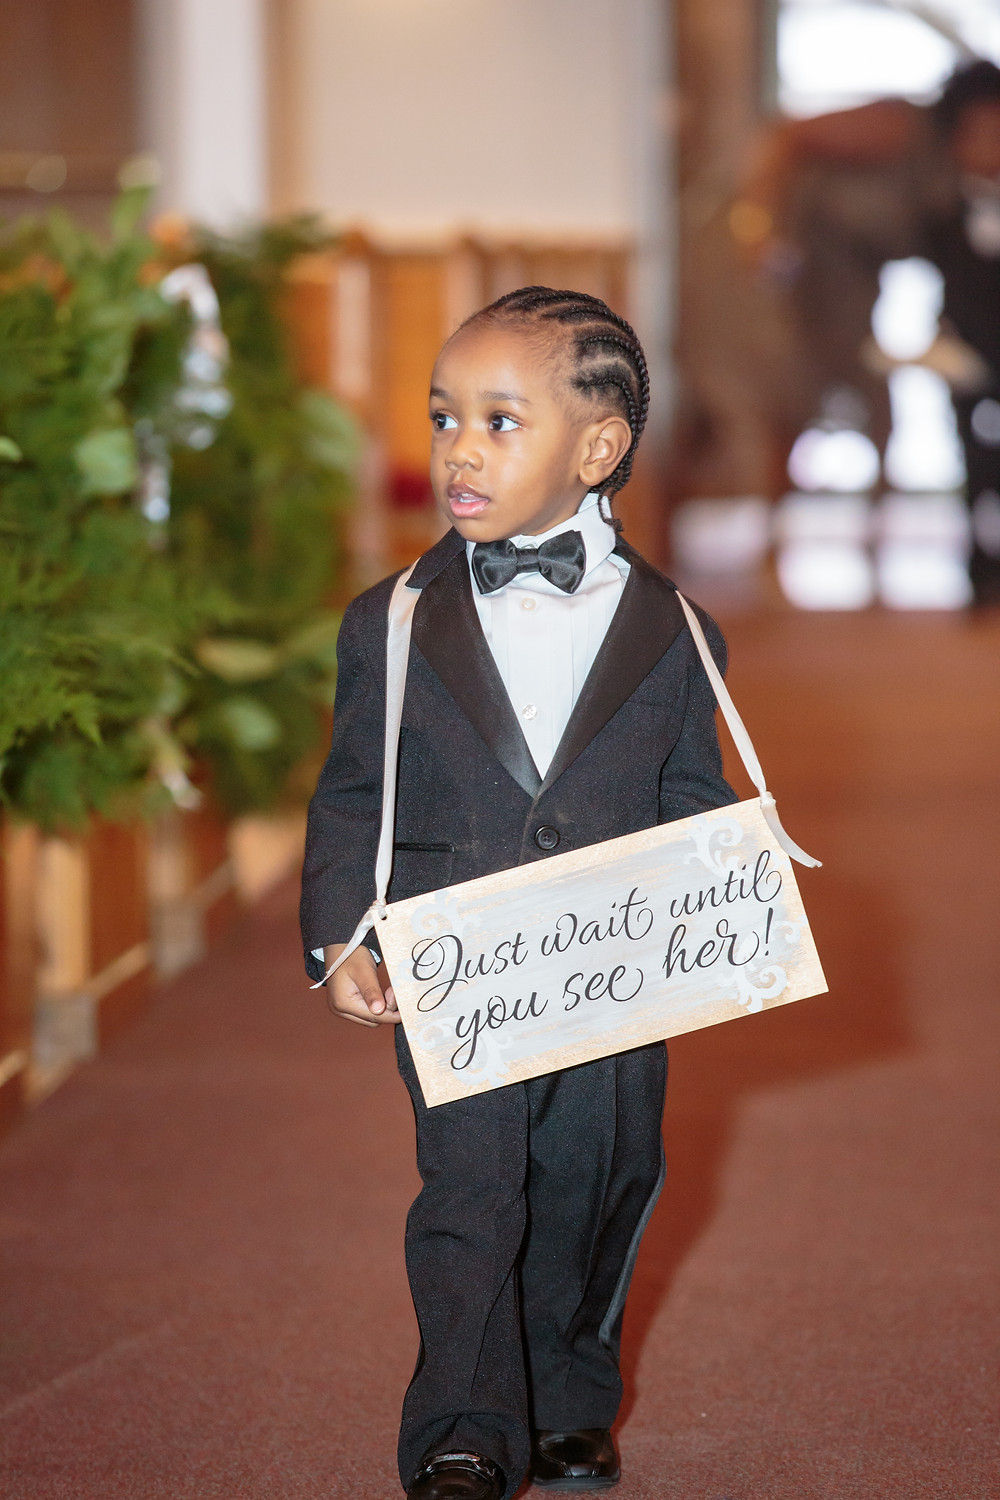 The junior groomsman walking down the isle to the alter at the Alfred Street Baptist Church in Alexandria, Virginia.